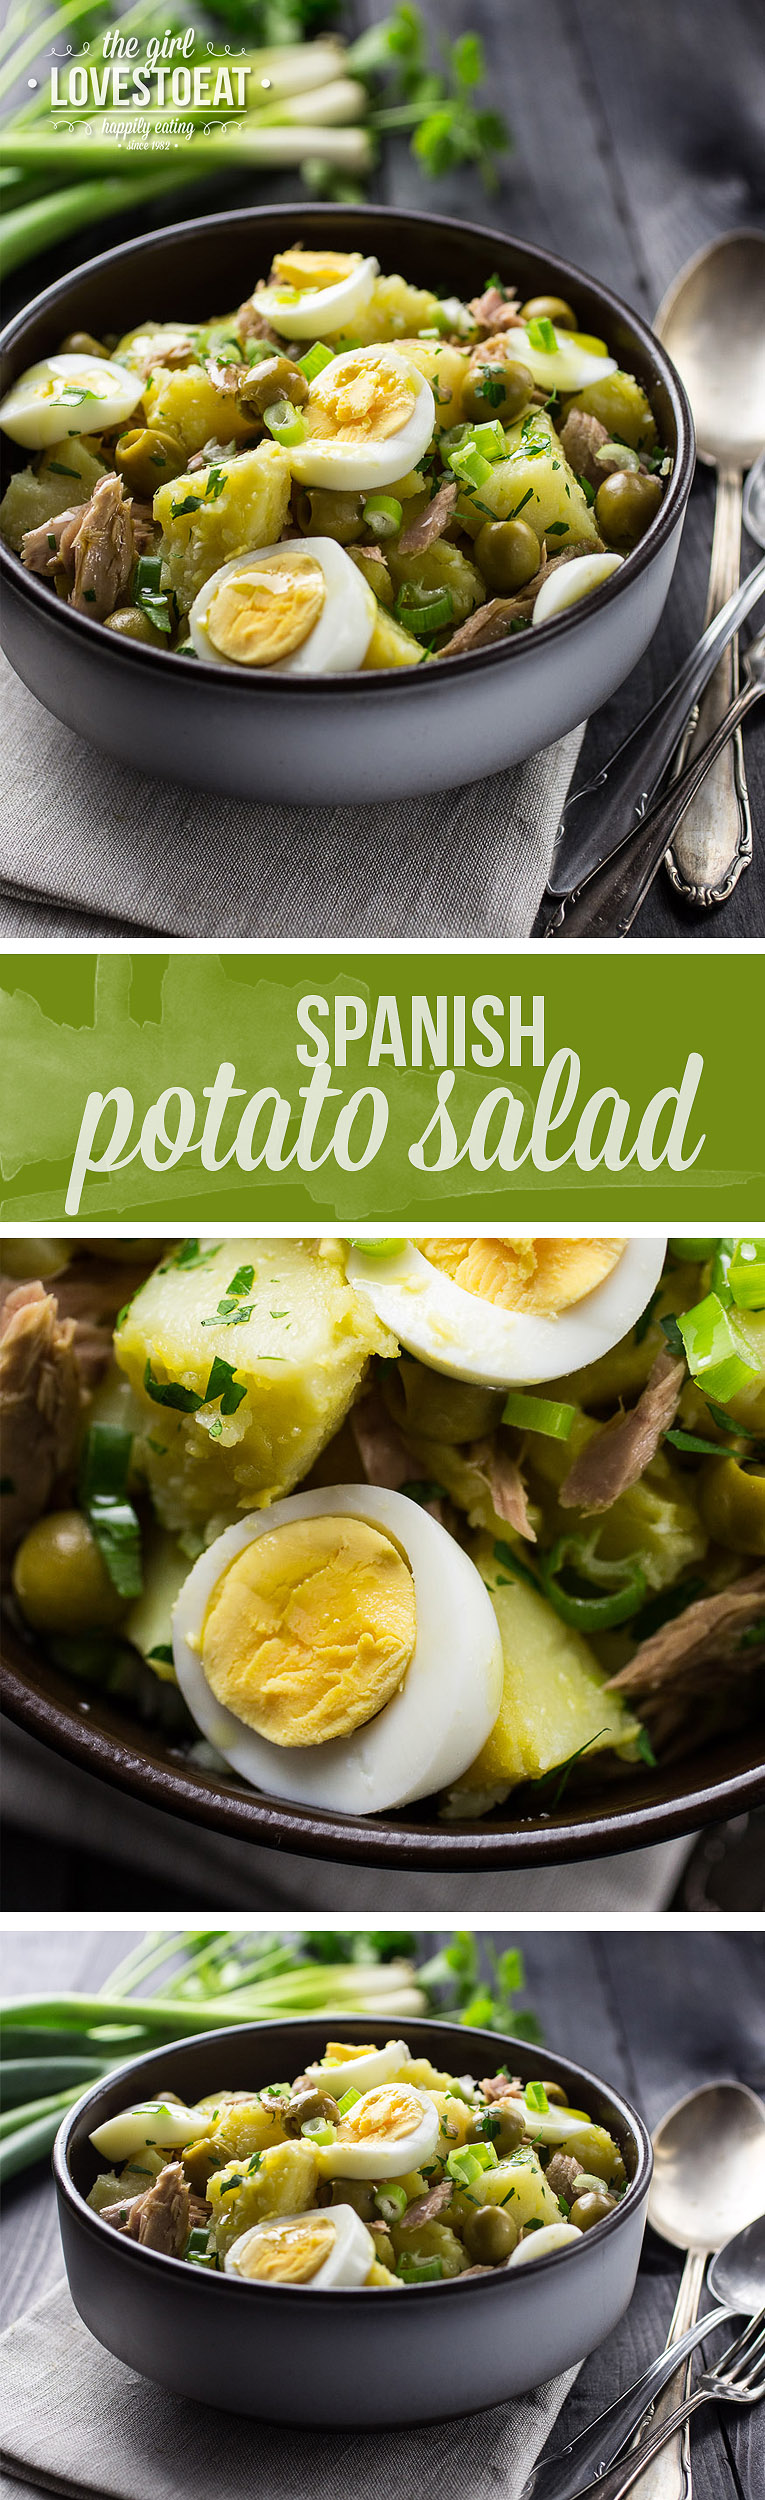 Spanish Potato Salad { thegirllovestoeat.com }